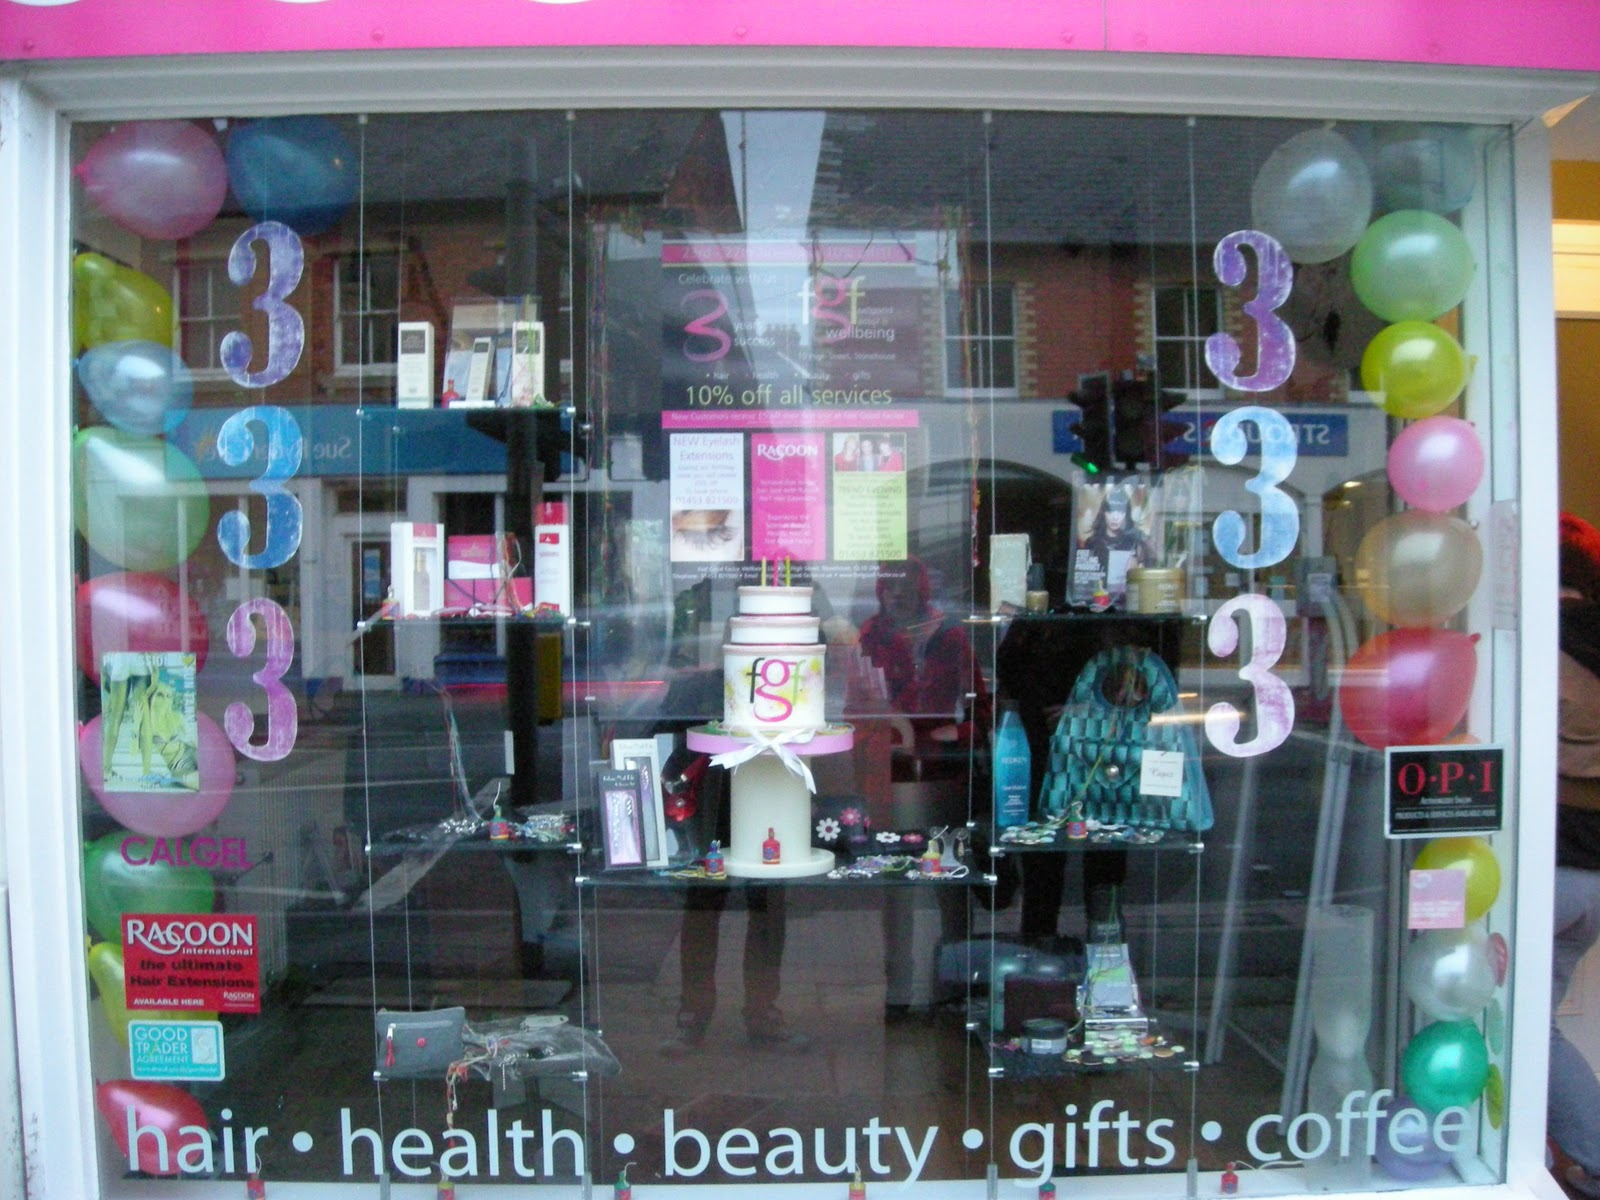 Hair Salon Window Designs Little Victories Rd Birthday Window